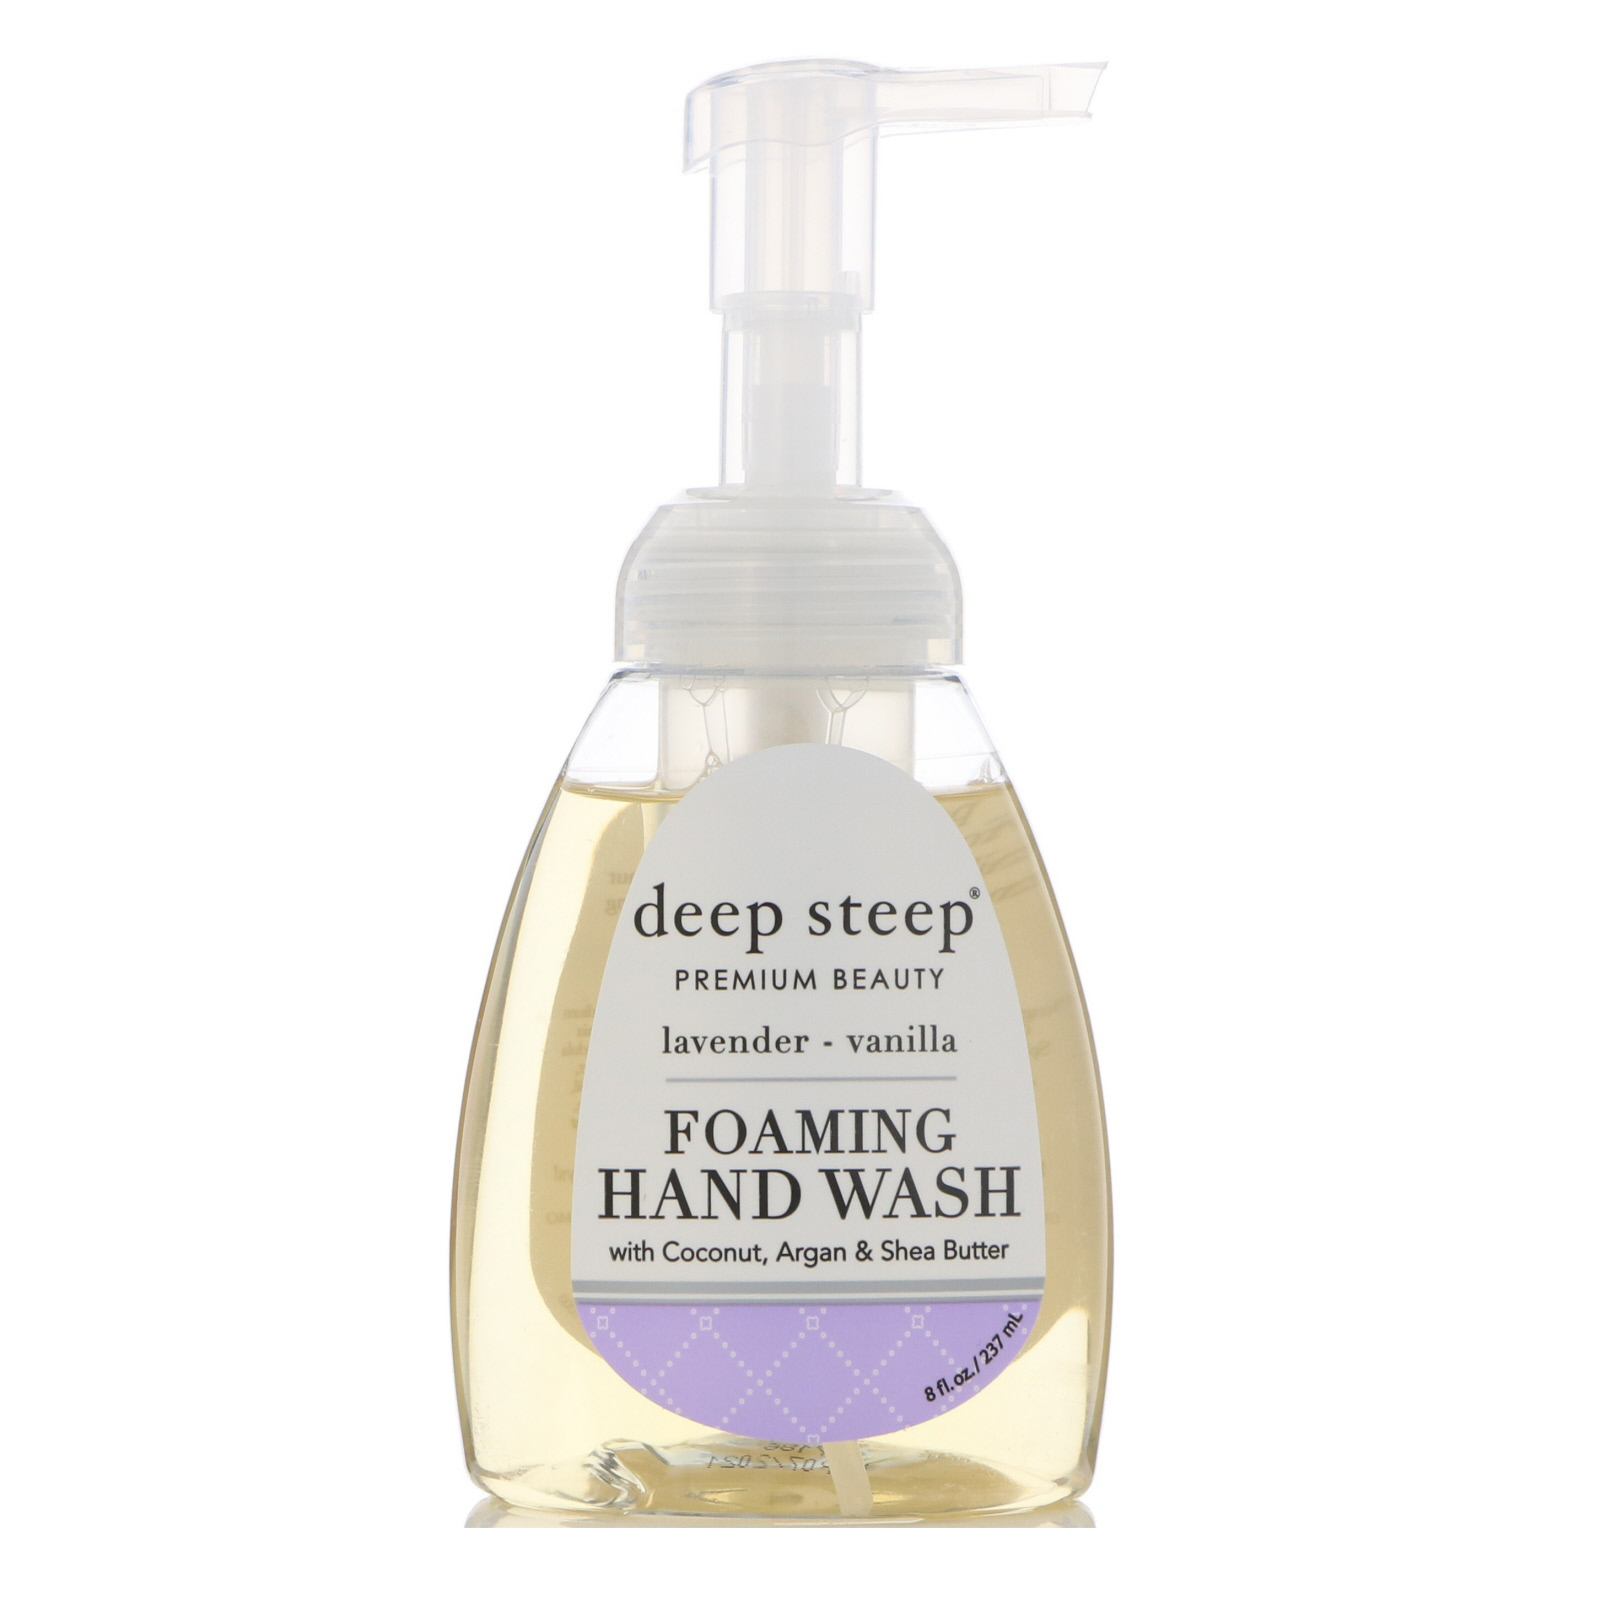 Deep Steep, Foaming Hand Wash, Lavender - Vanilla, 8 fl oz (237 ml)